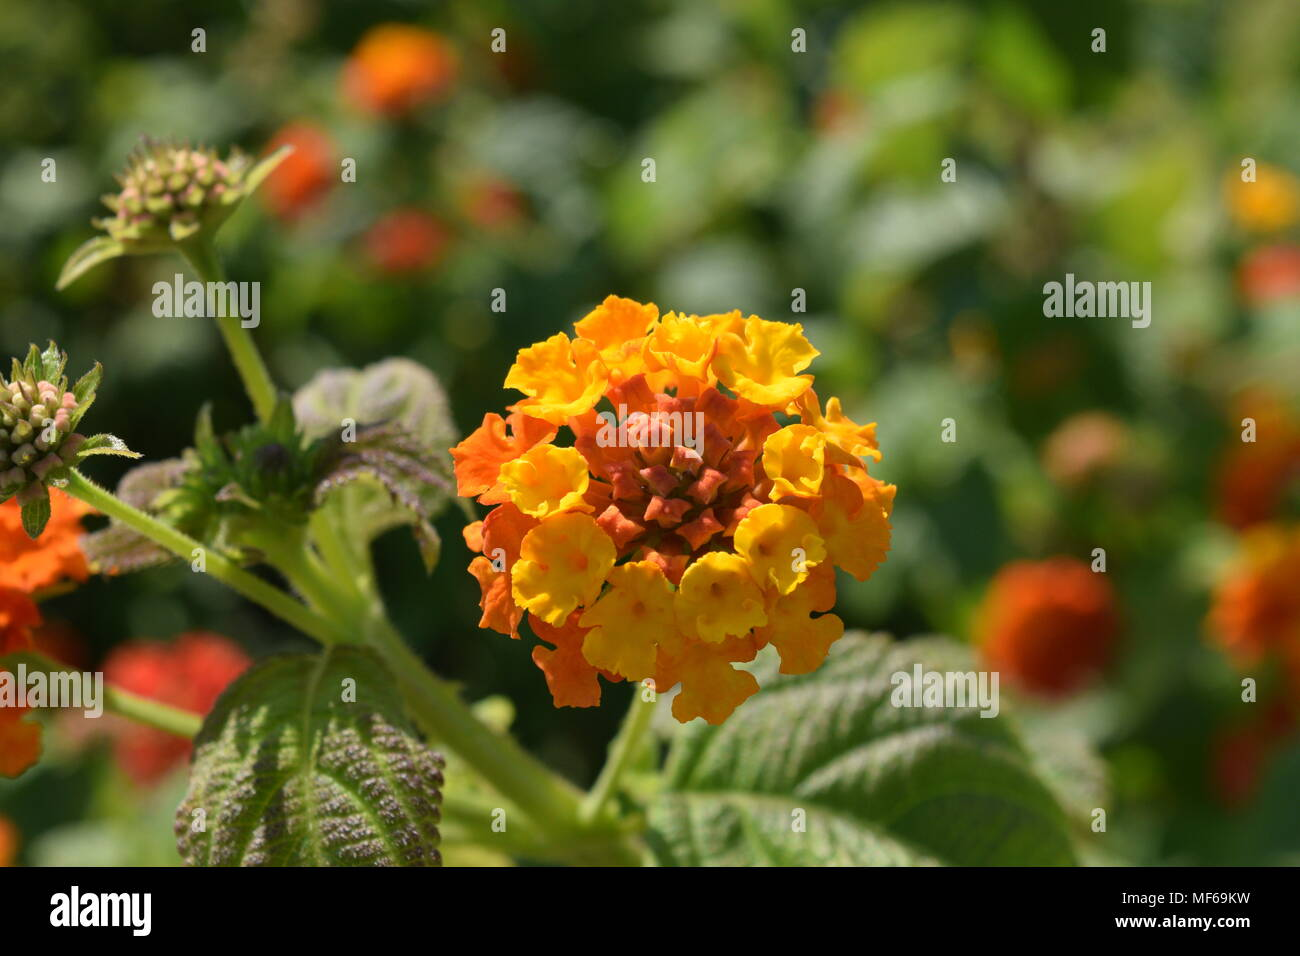 Fiori Gialli Arancio.Fiore Giallo Arancio Stock Photo 181462845 Alamy